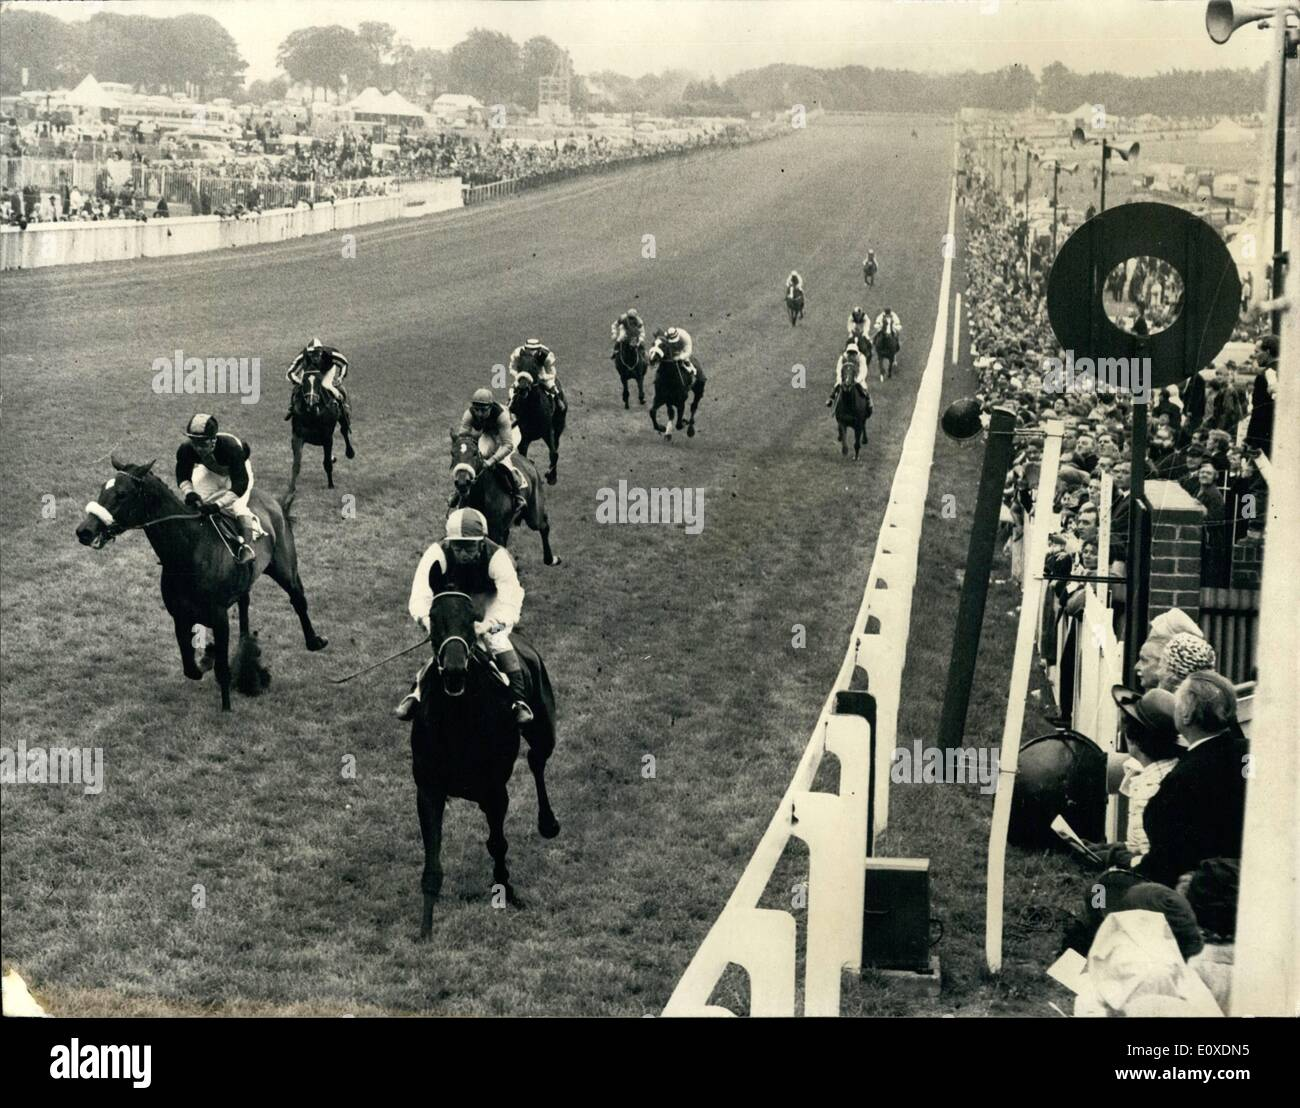 May 05, 1966 - Irish horse ''Valoris'' wins the richest -ever oaks - worth £35,711 - at Epson today.: PhotoStock Photo